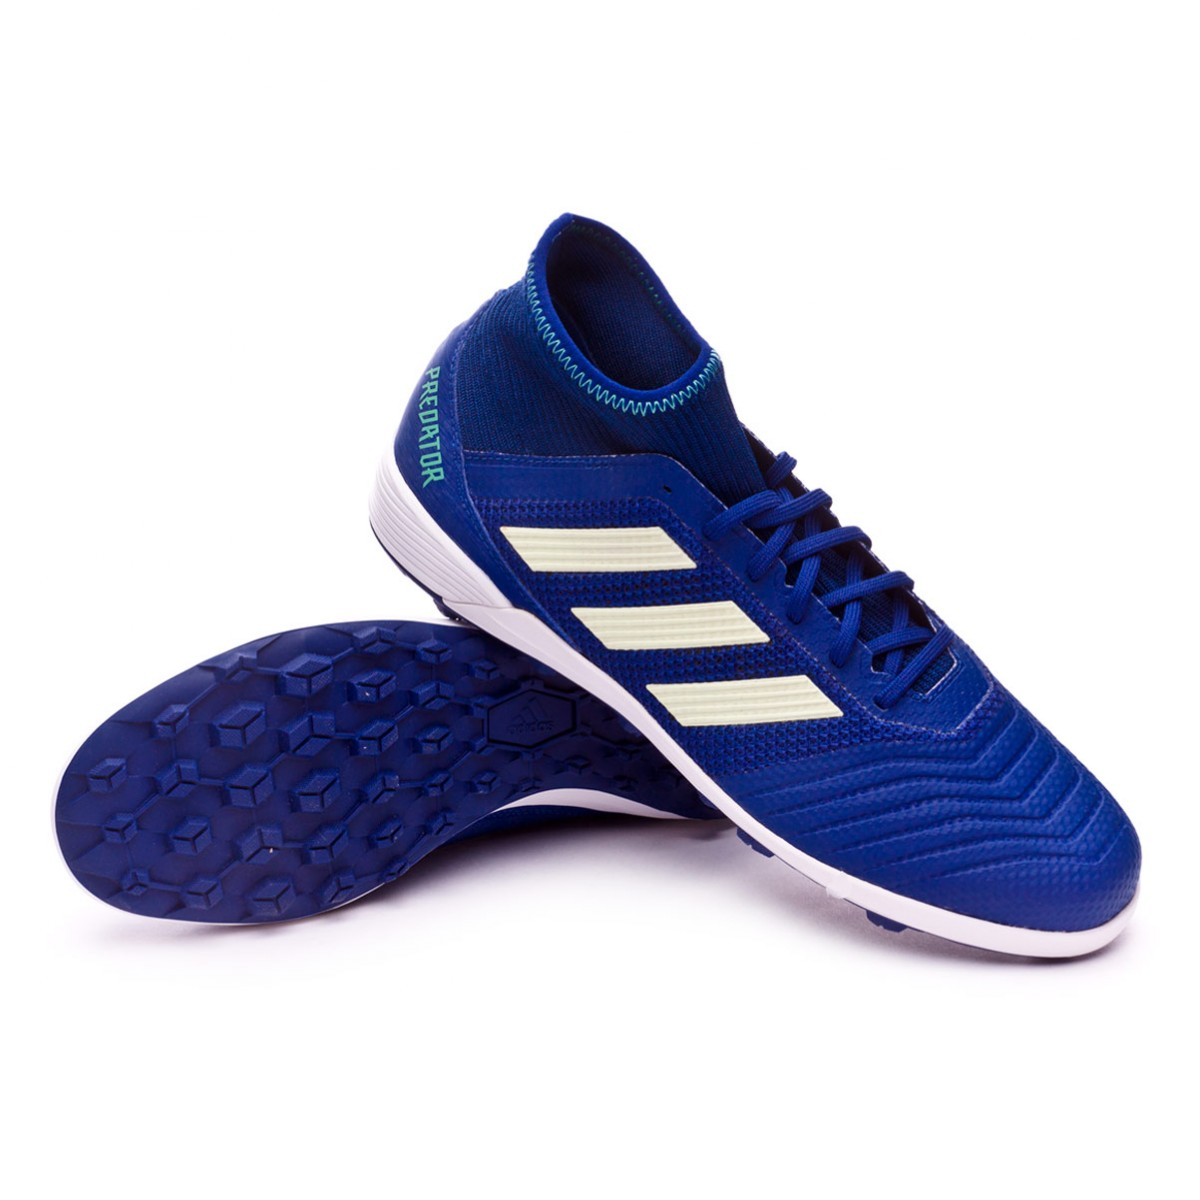 85809cb49e2c sock football trainers adidas predator tango 18.3 tf blue white clearance  sale  category. football boots · adidas boots